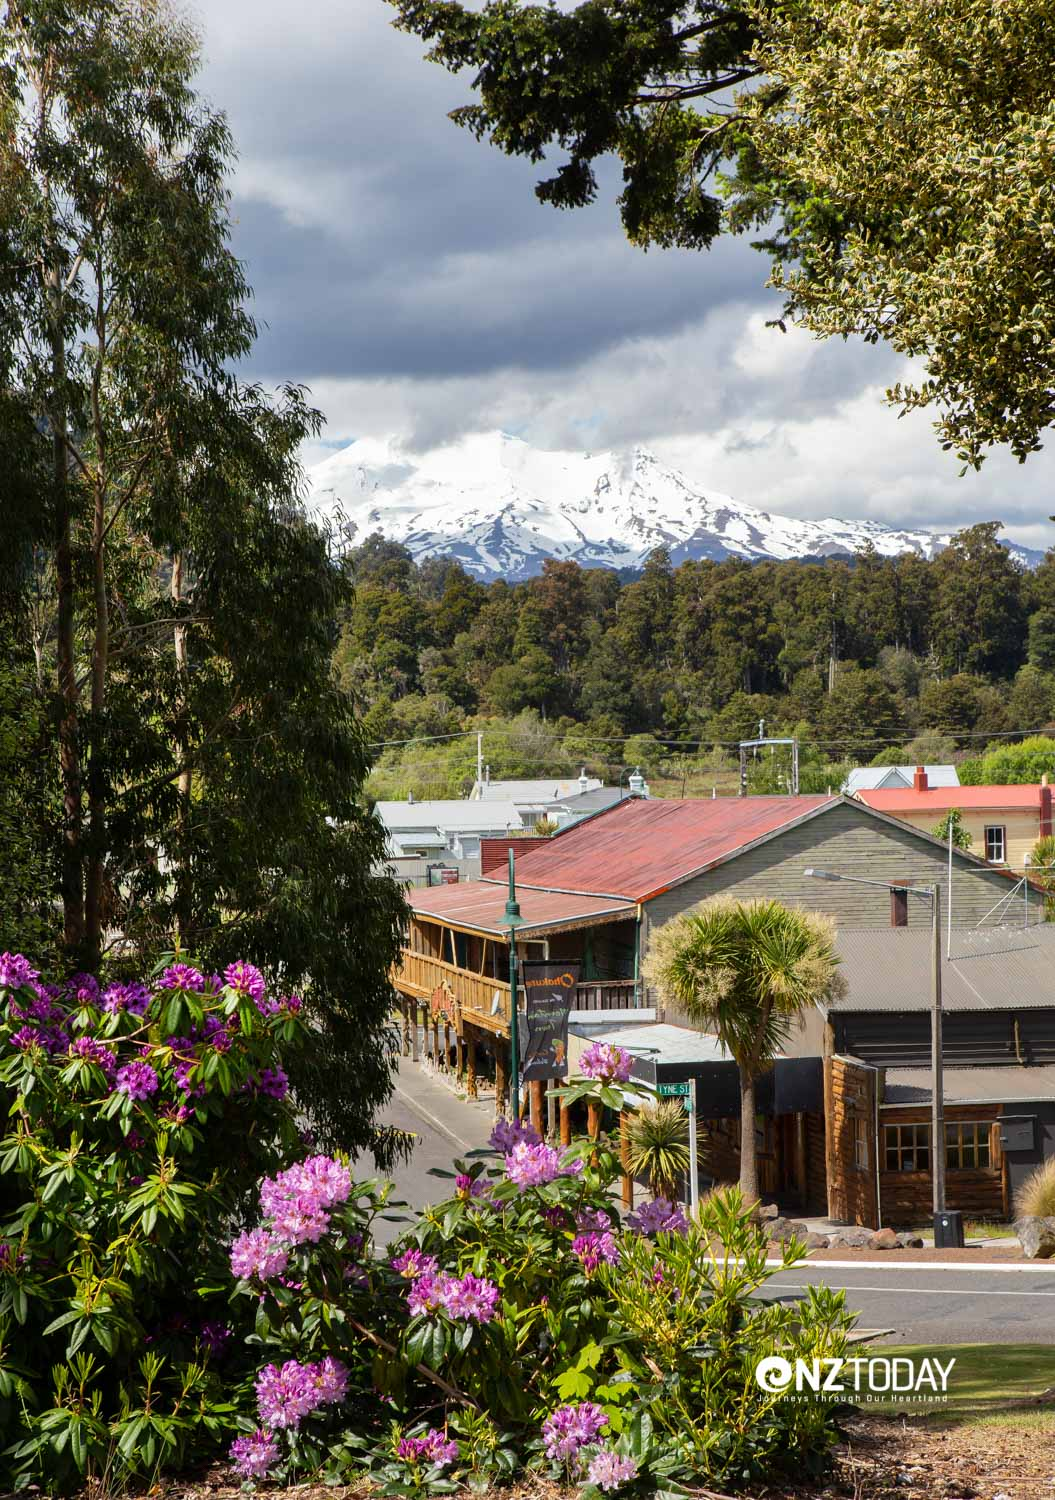 Just down from Aorangi Lodge is a view of the Junction and Mt Ruapehu